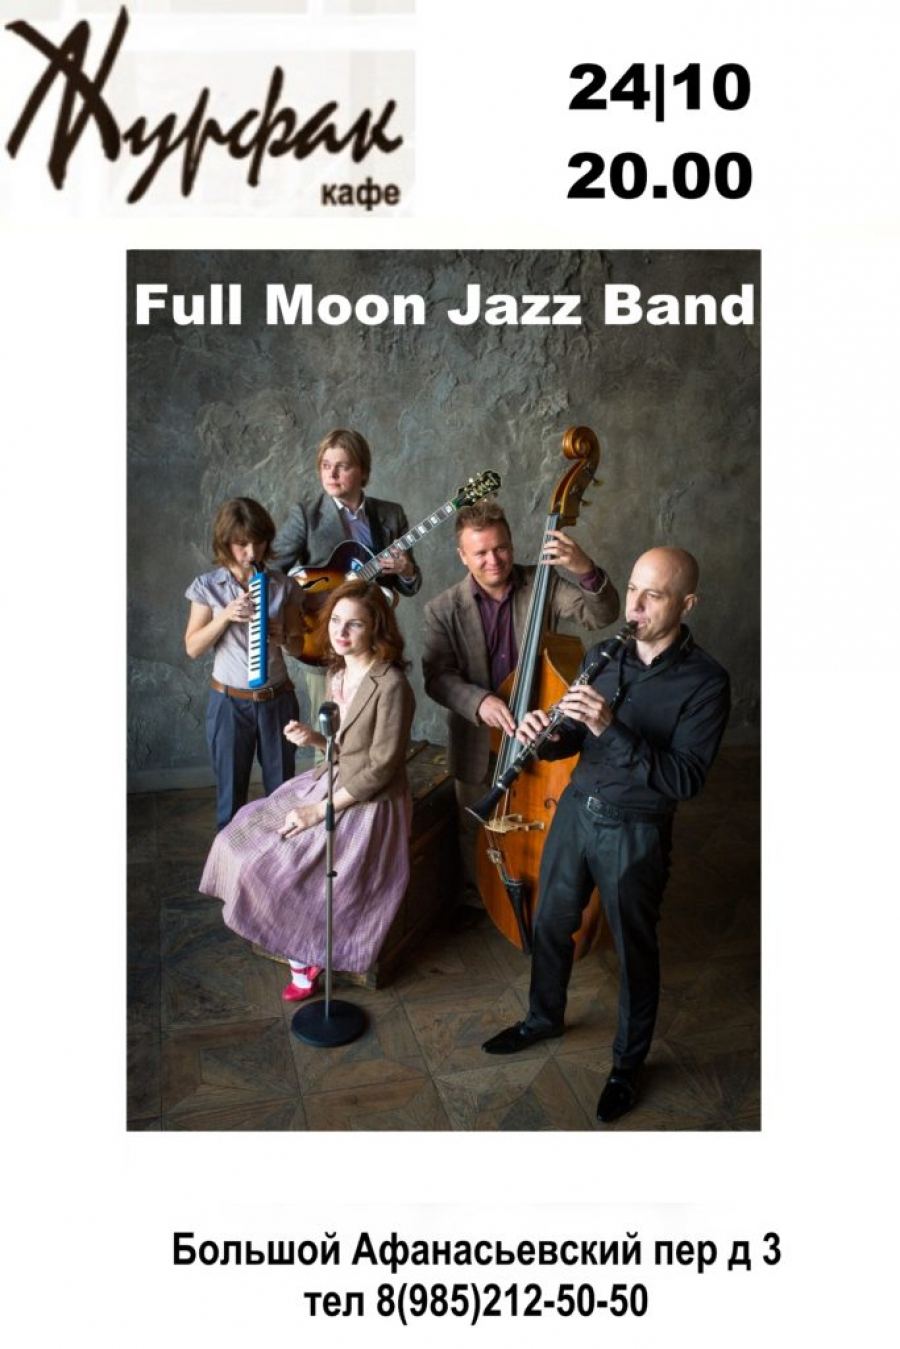 FOOL MOON JAZZ BAND